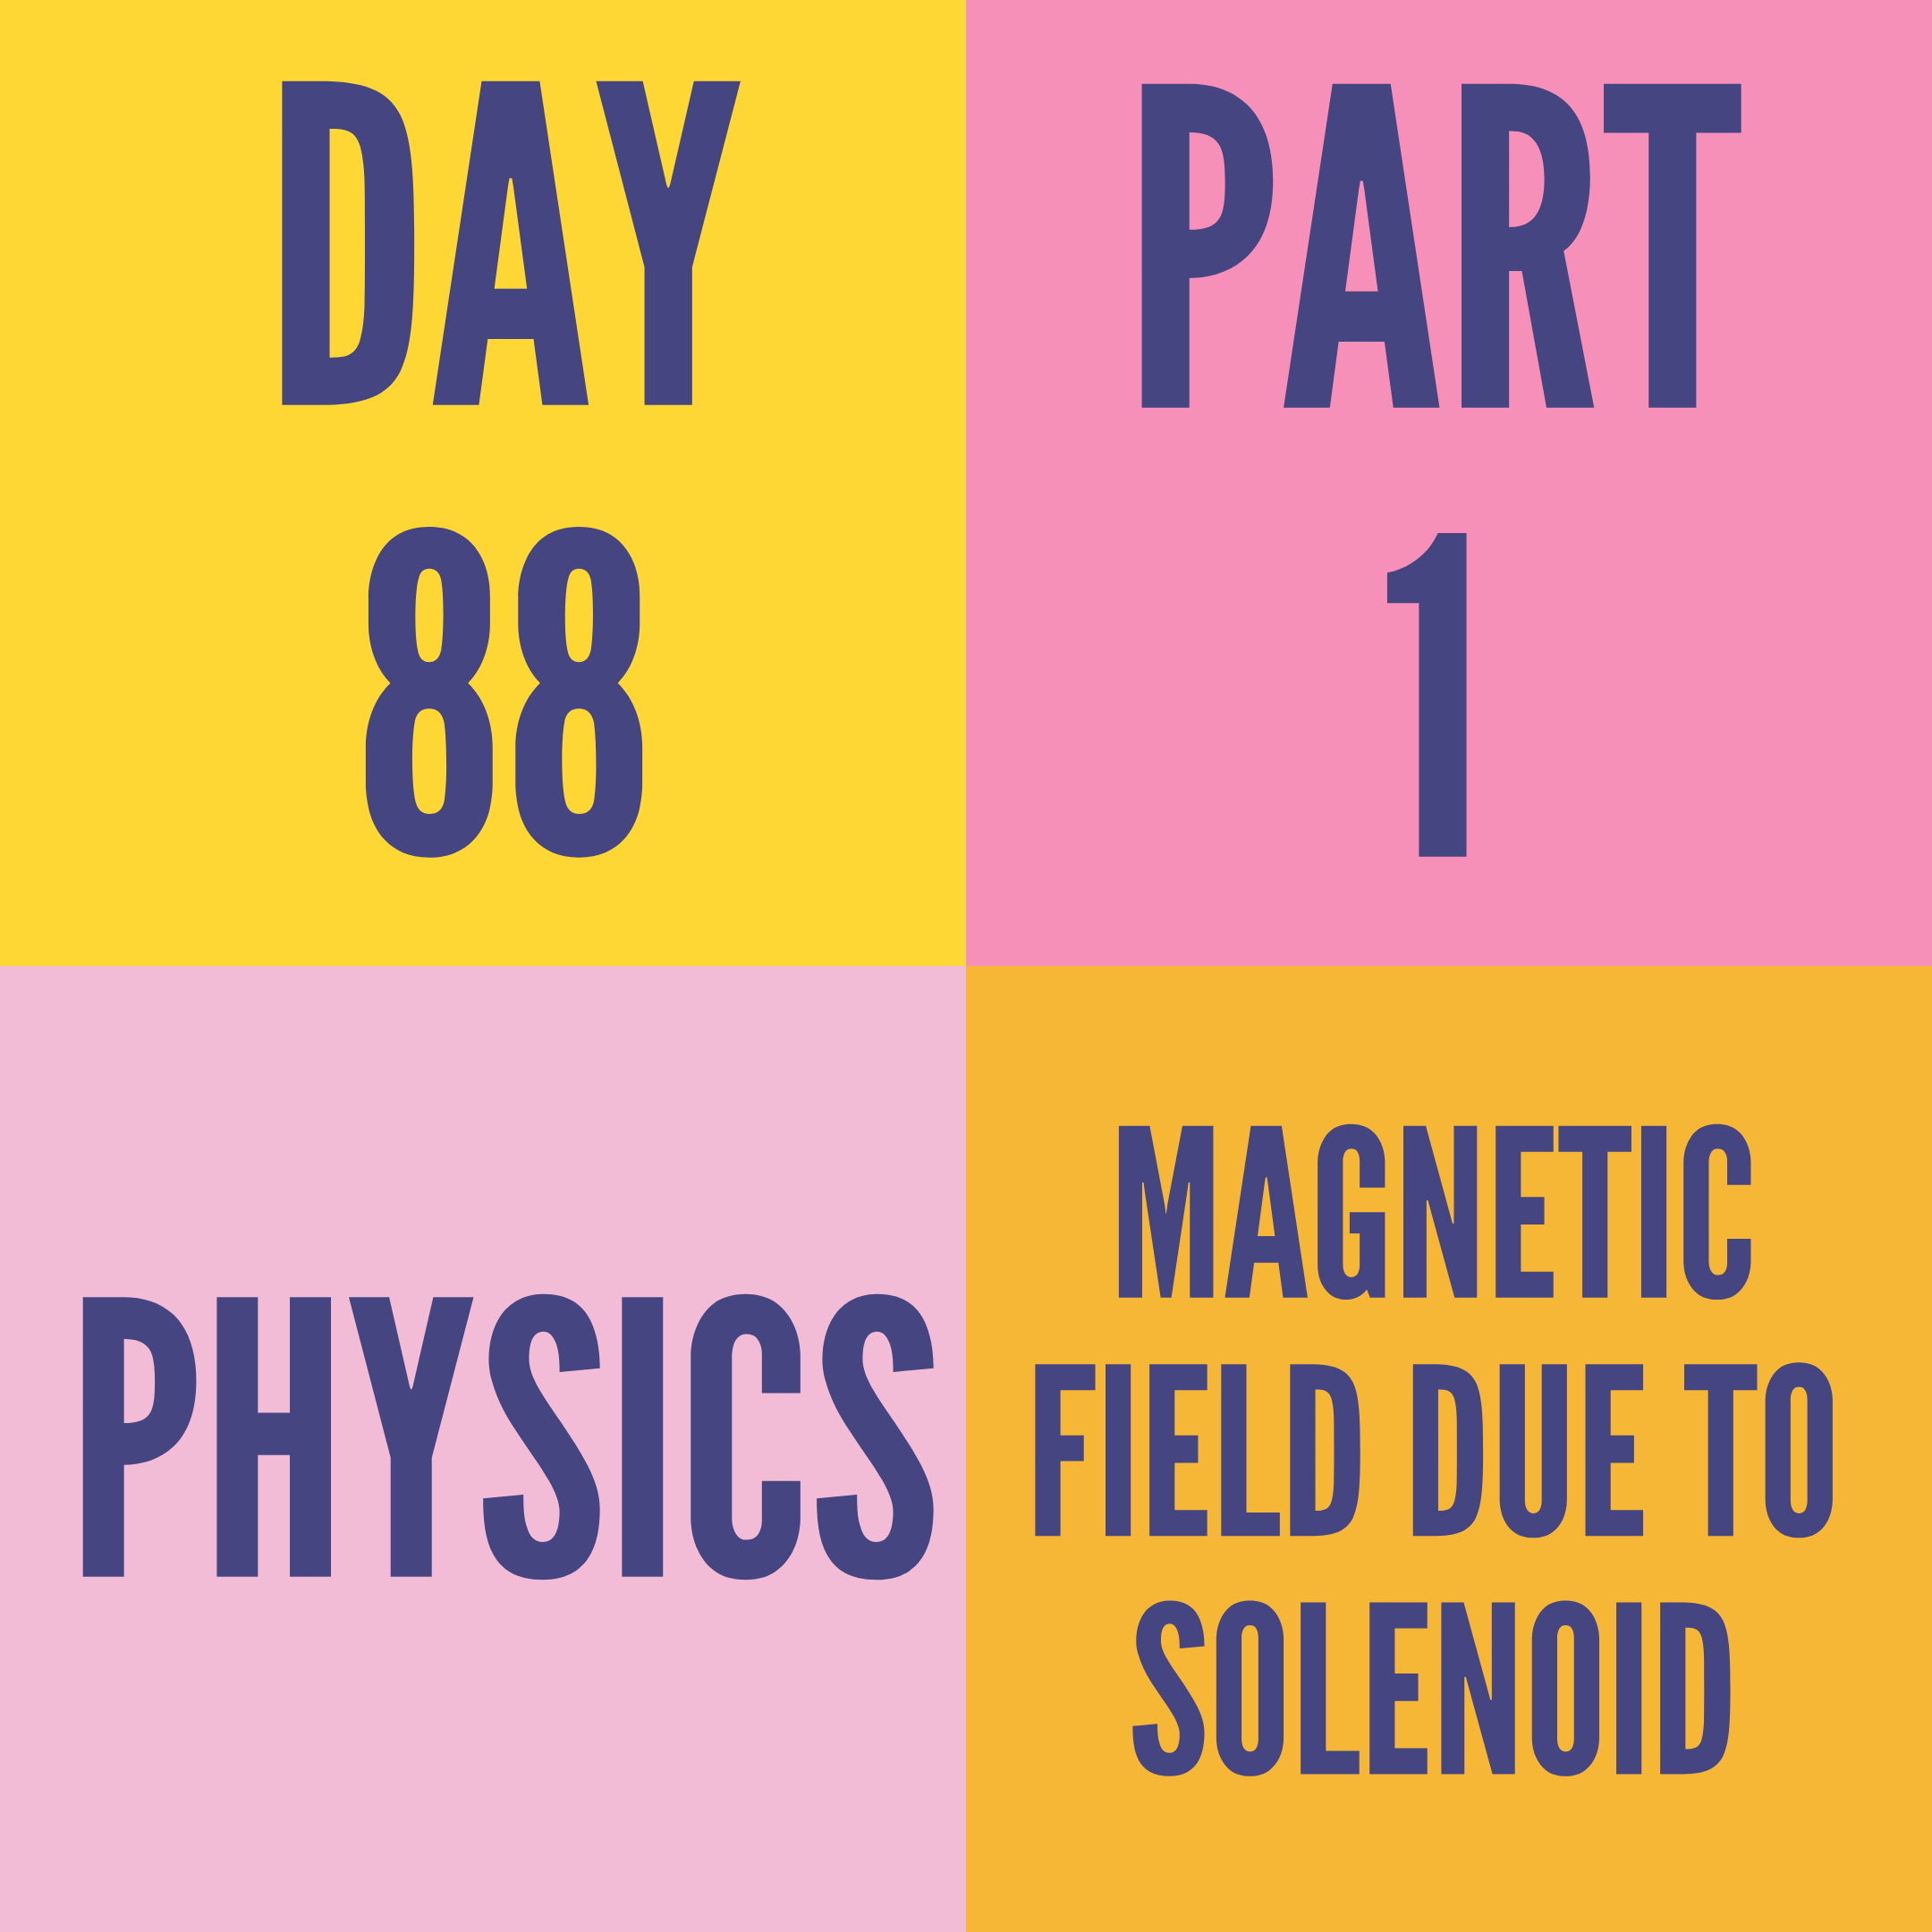 DAY-88 PART-1 MAGNETIC FIELD DUE TO SOLENOID